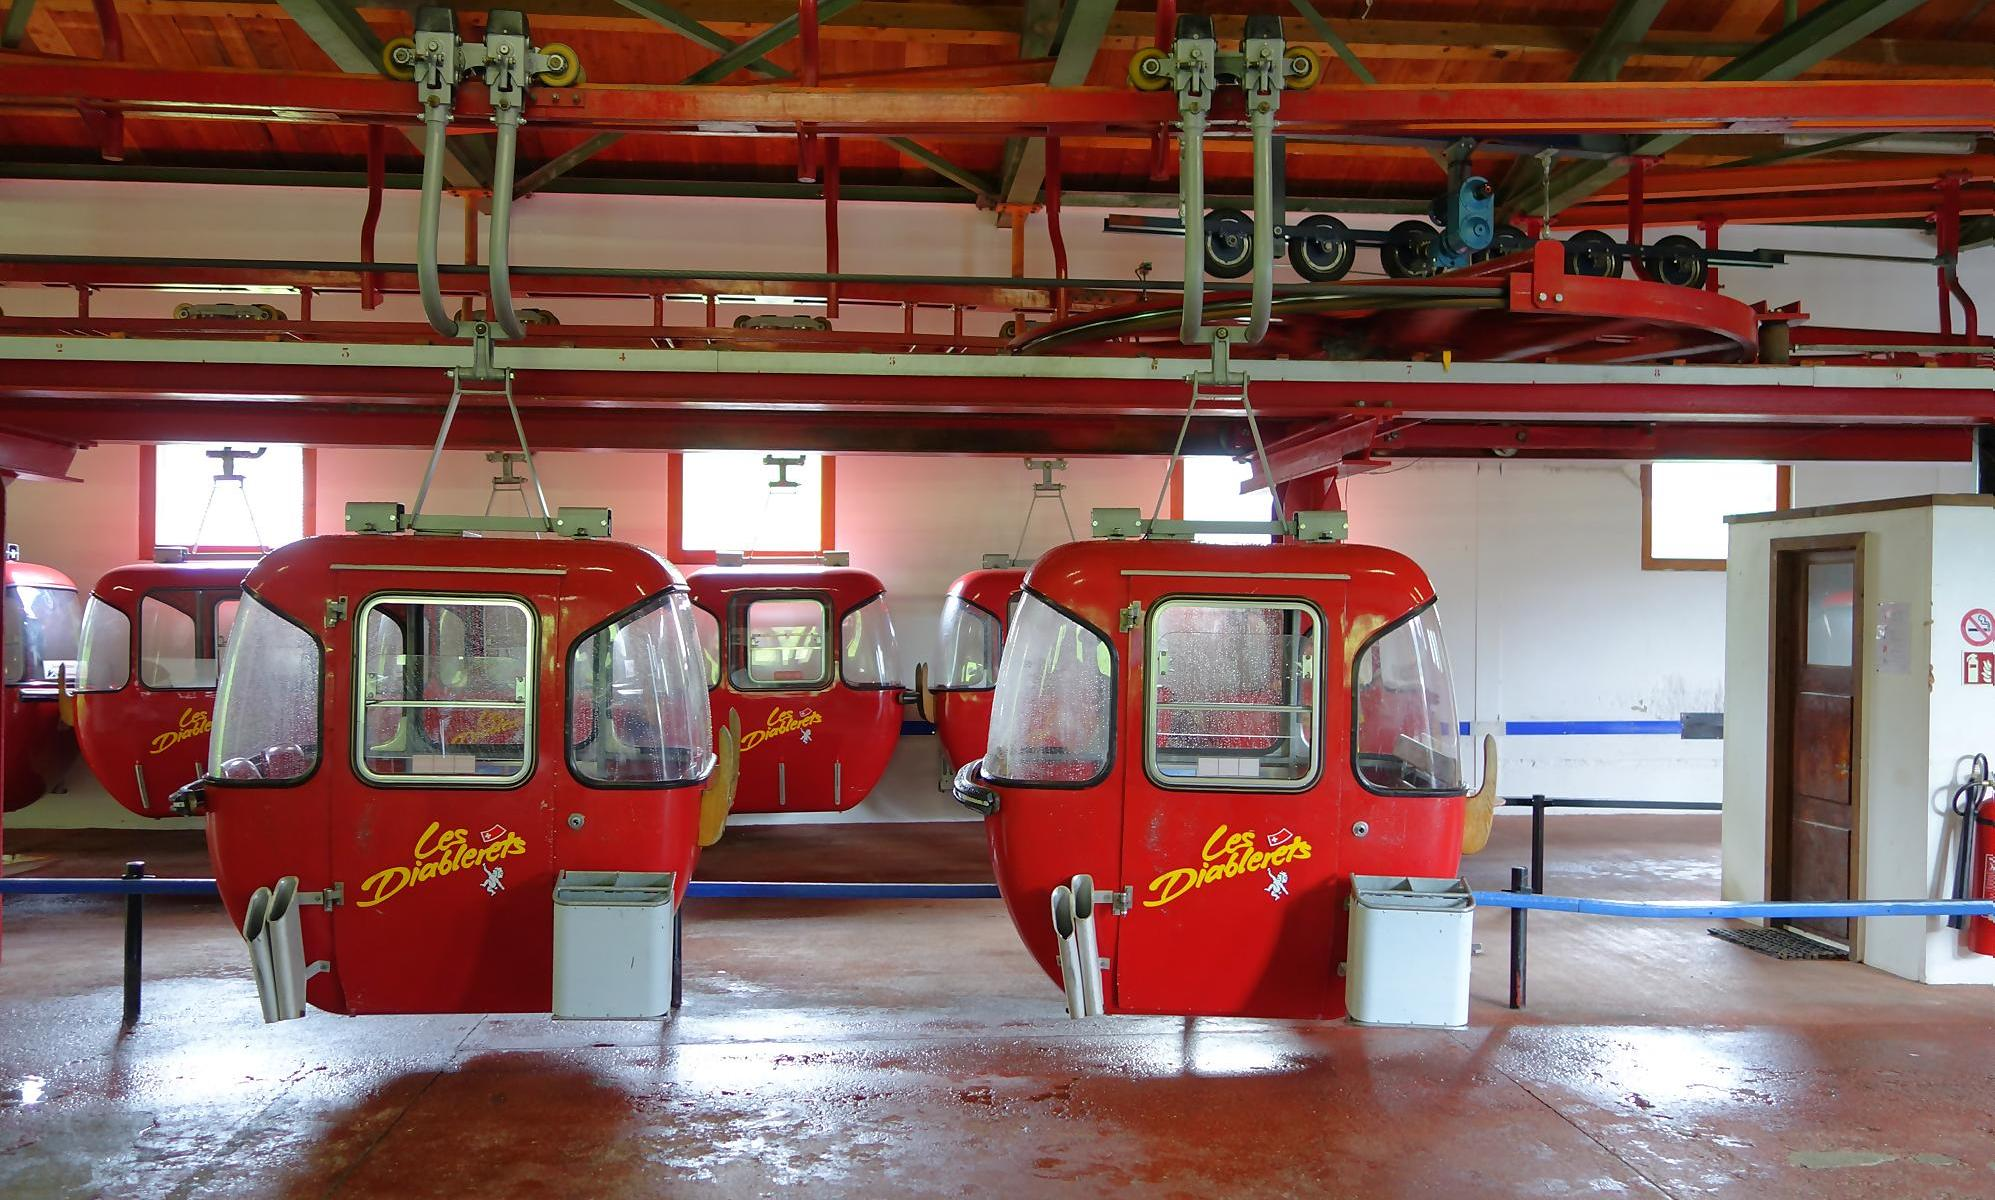 The Isenau lift is due to be replaced. Photo: Les Diablerets.